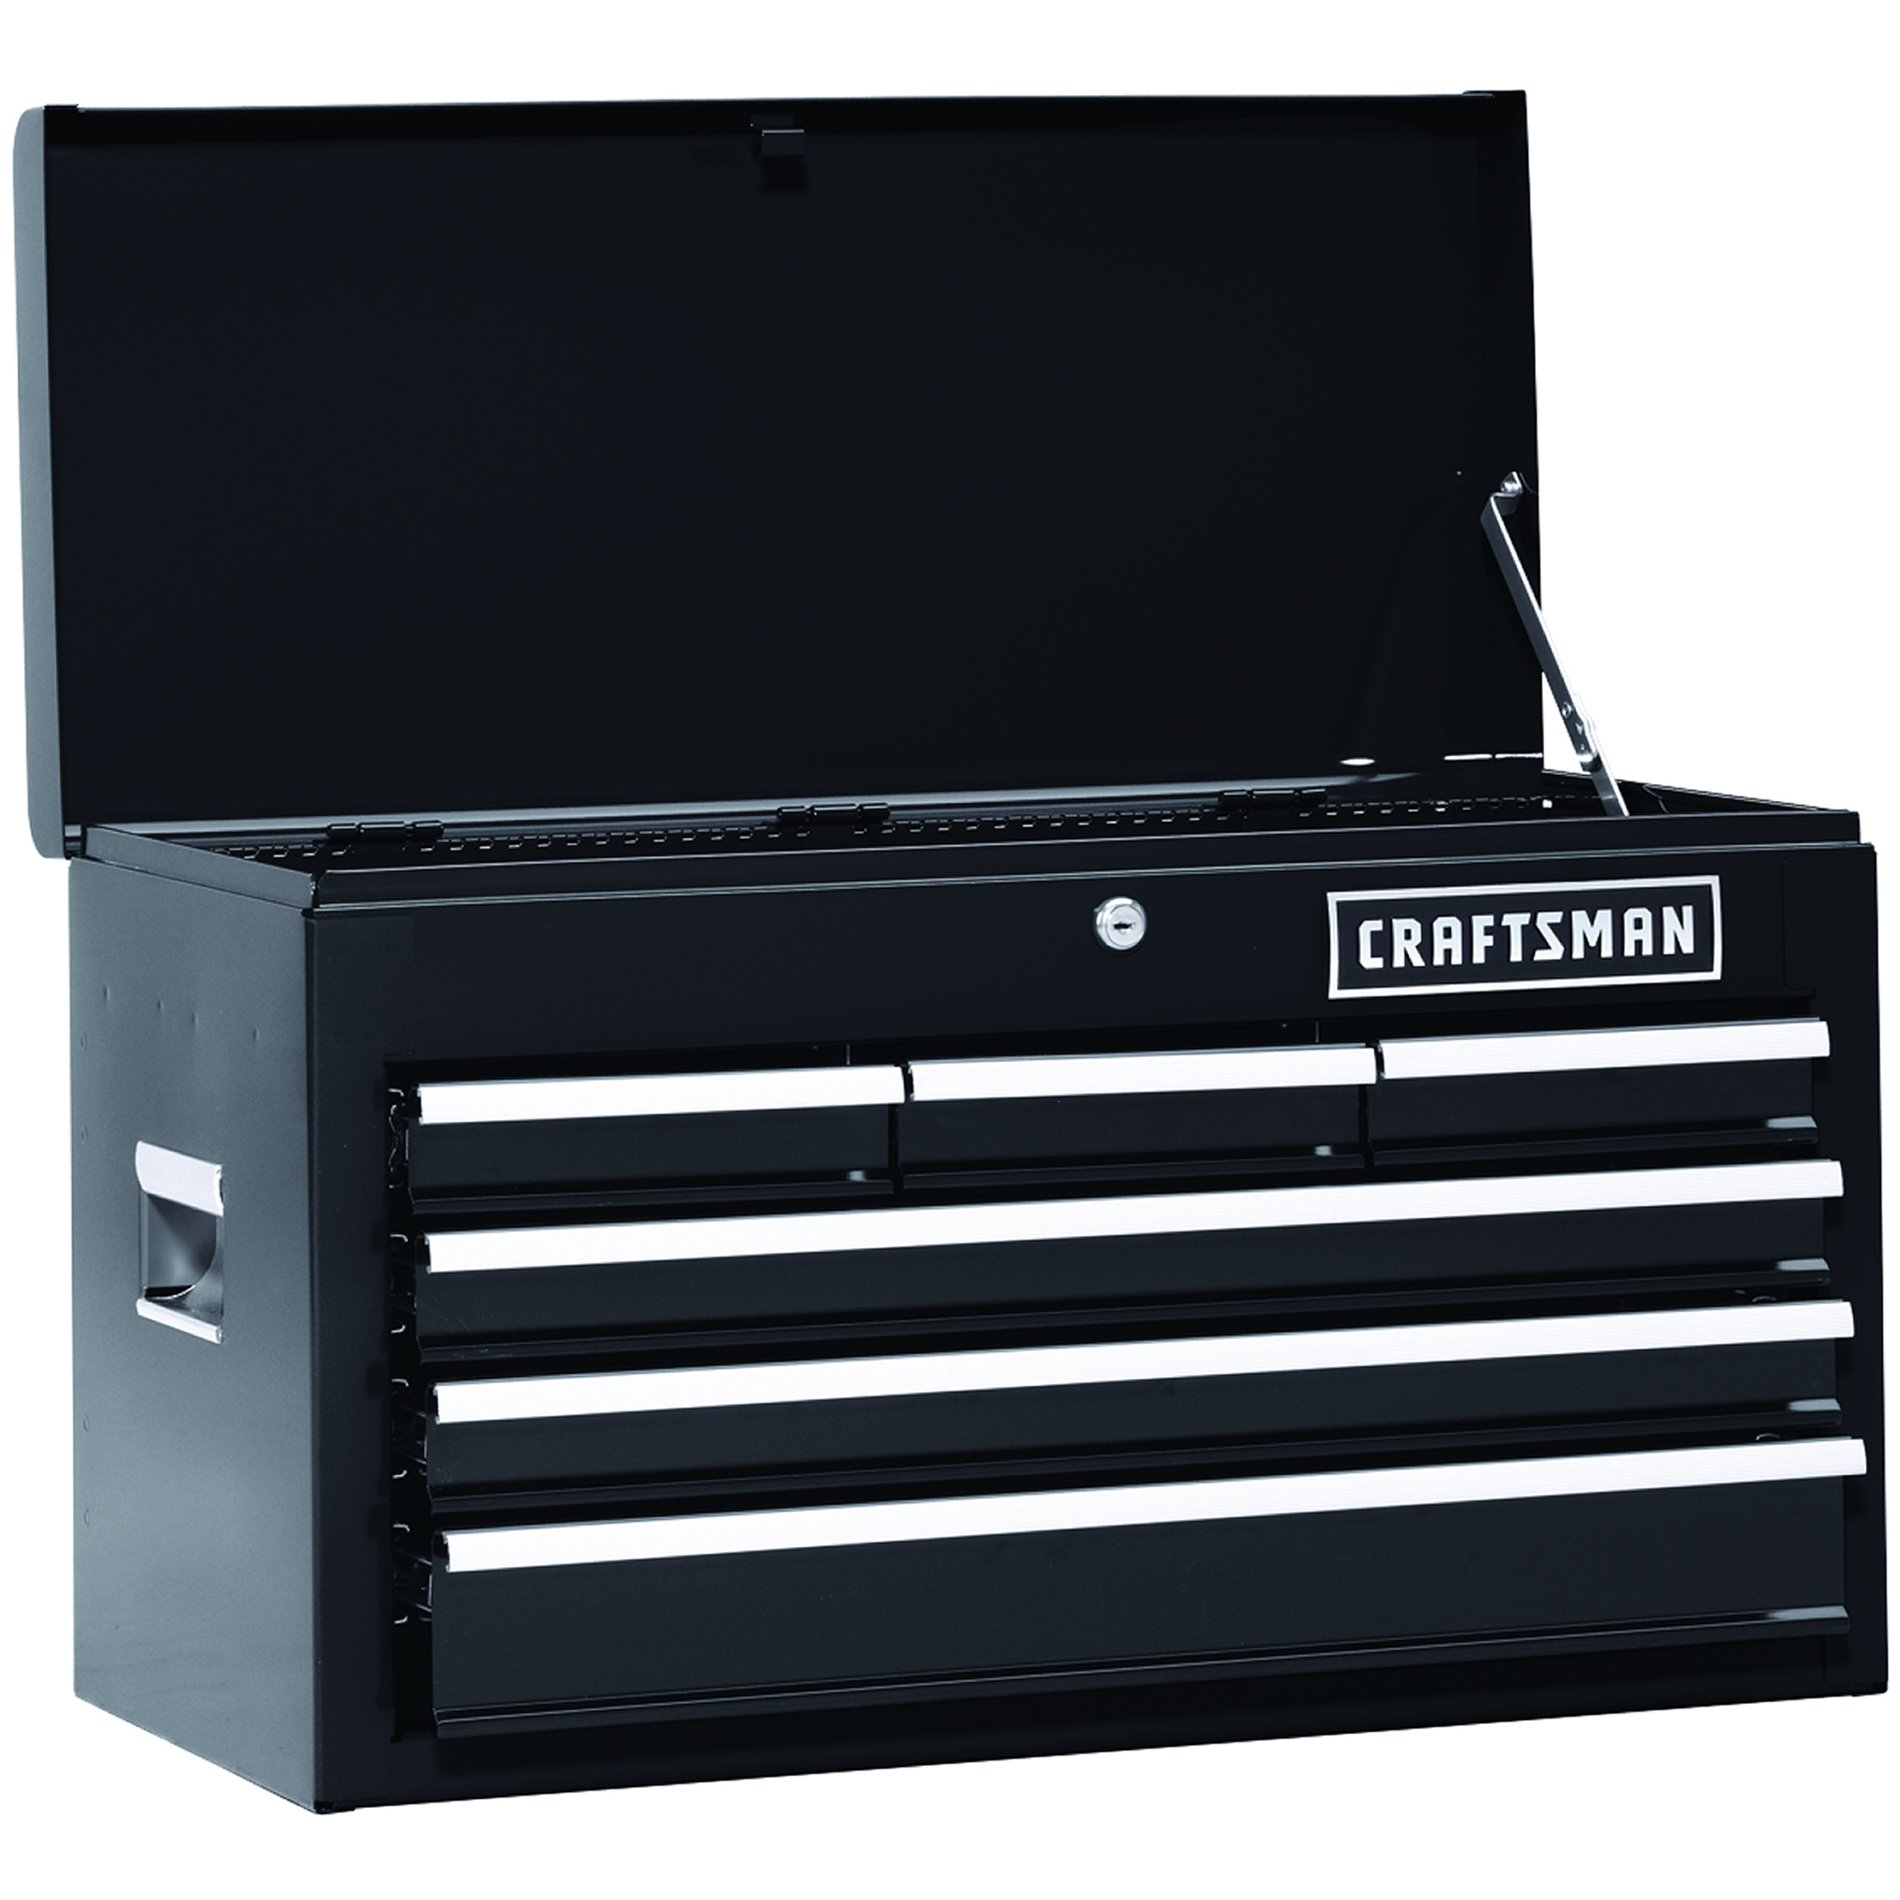 "Craftsman 26"""" 6-Drawer Heavy-Duty Top Chest - Black"